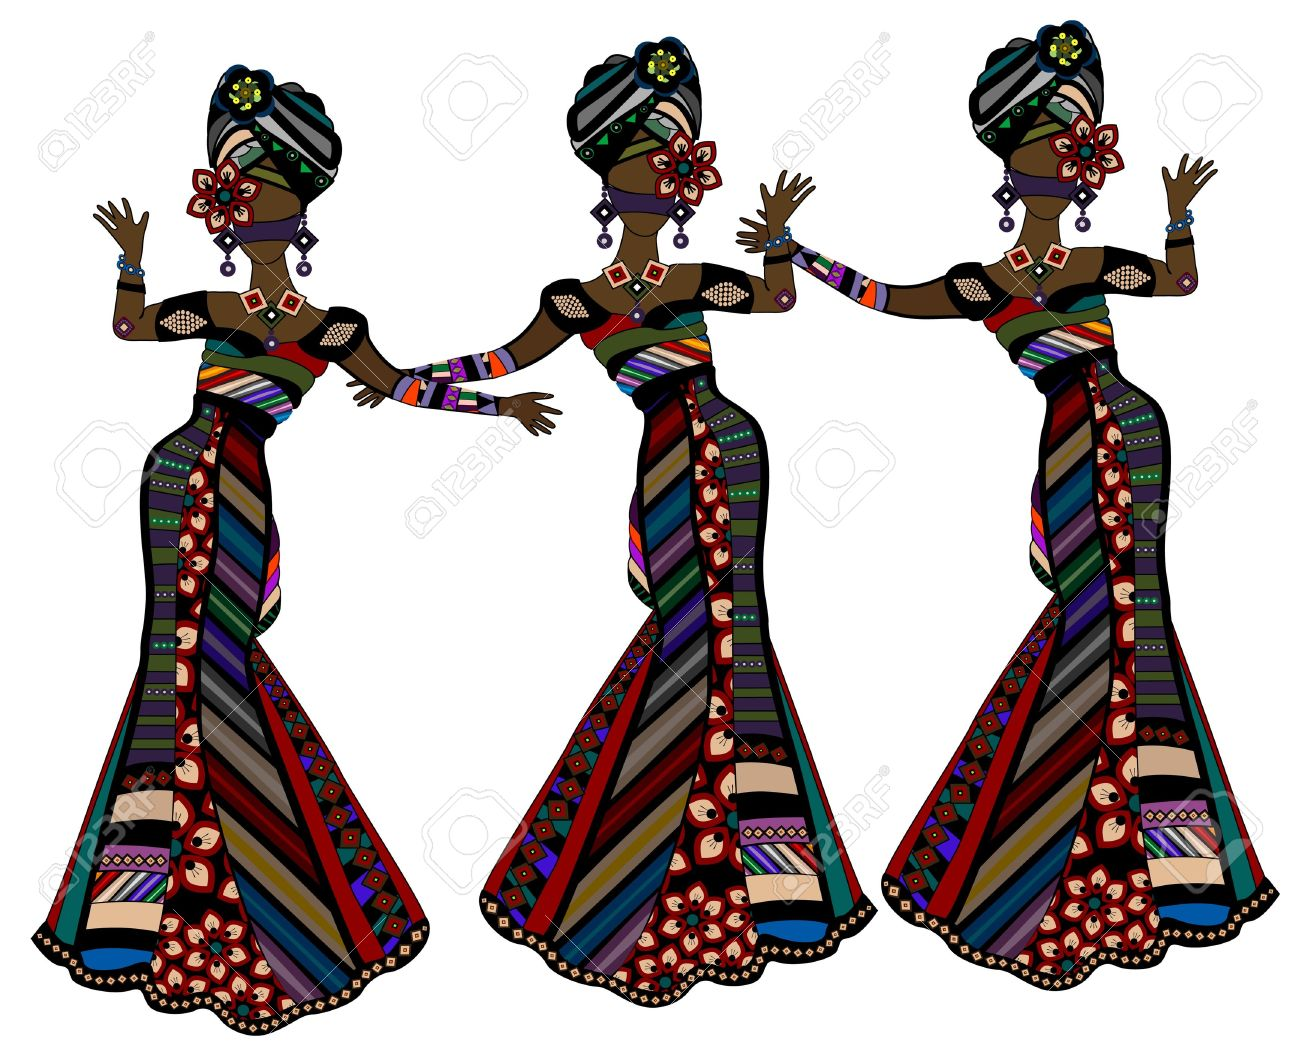 women in beautiful dresses in ethnic style dancing on a white background - 17777124